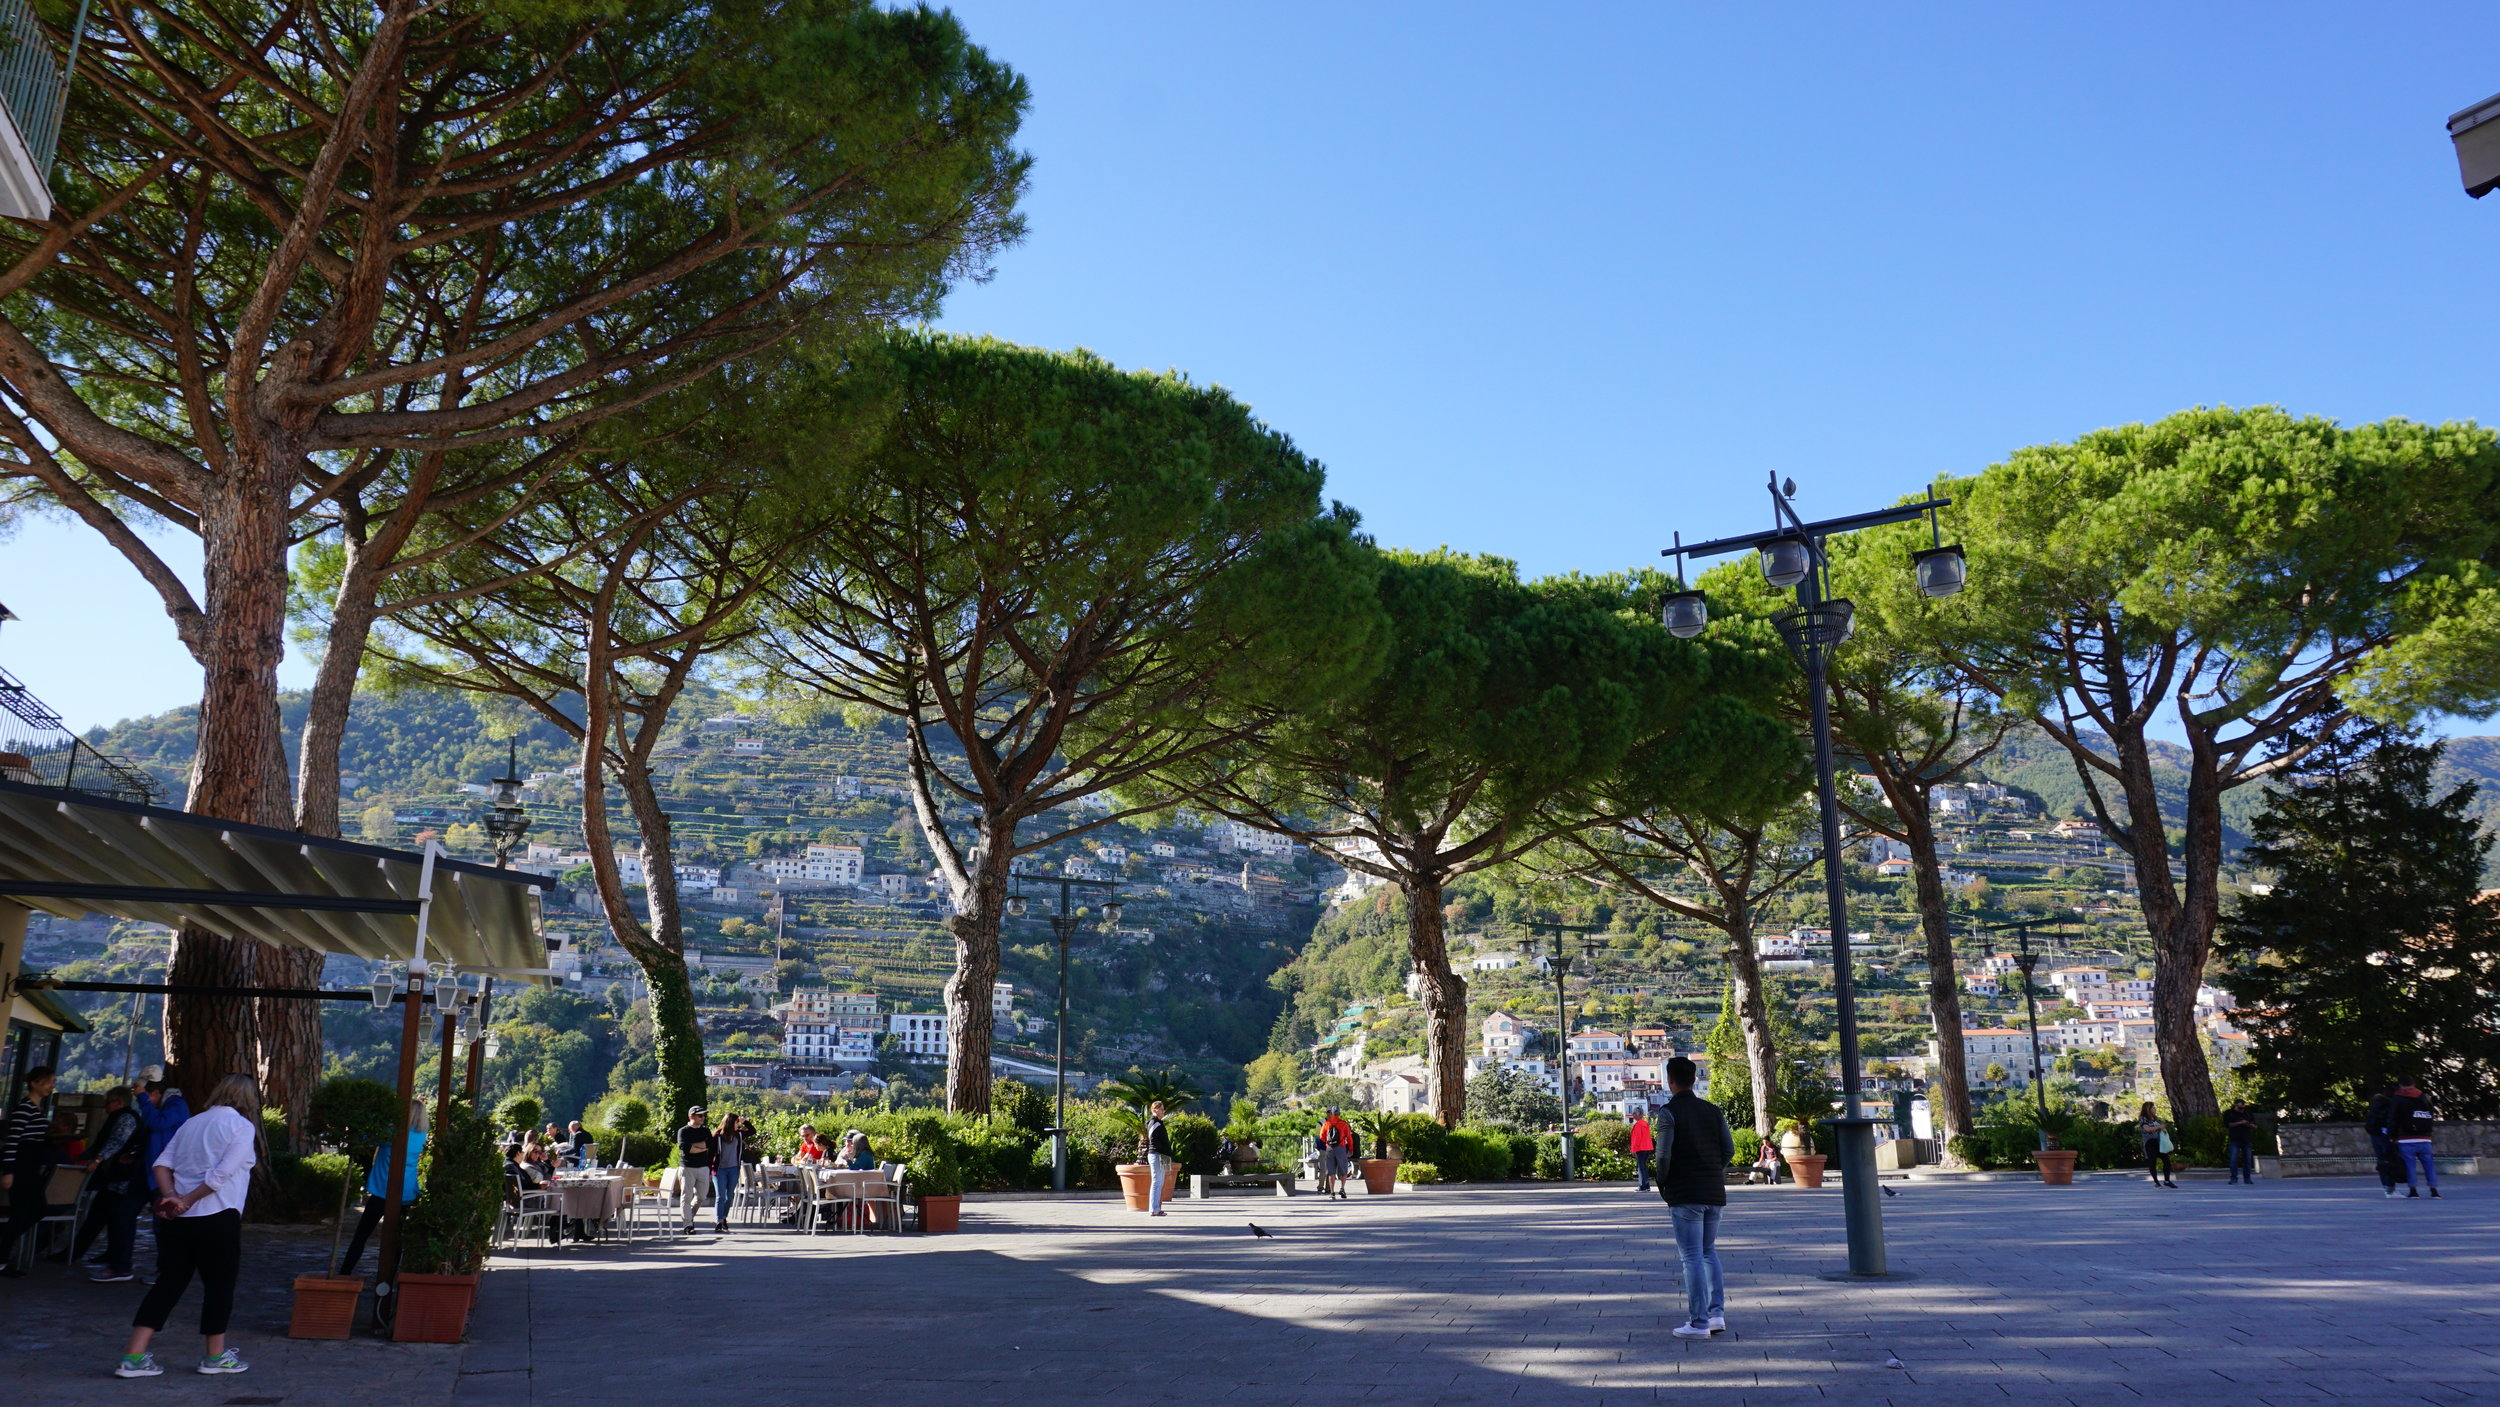 Those trees that embrace Piazza Duomo in Ravello.So dreamy...